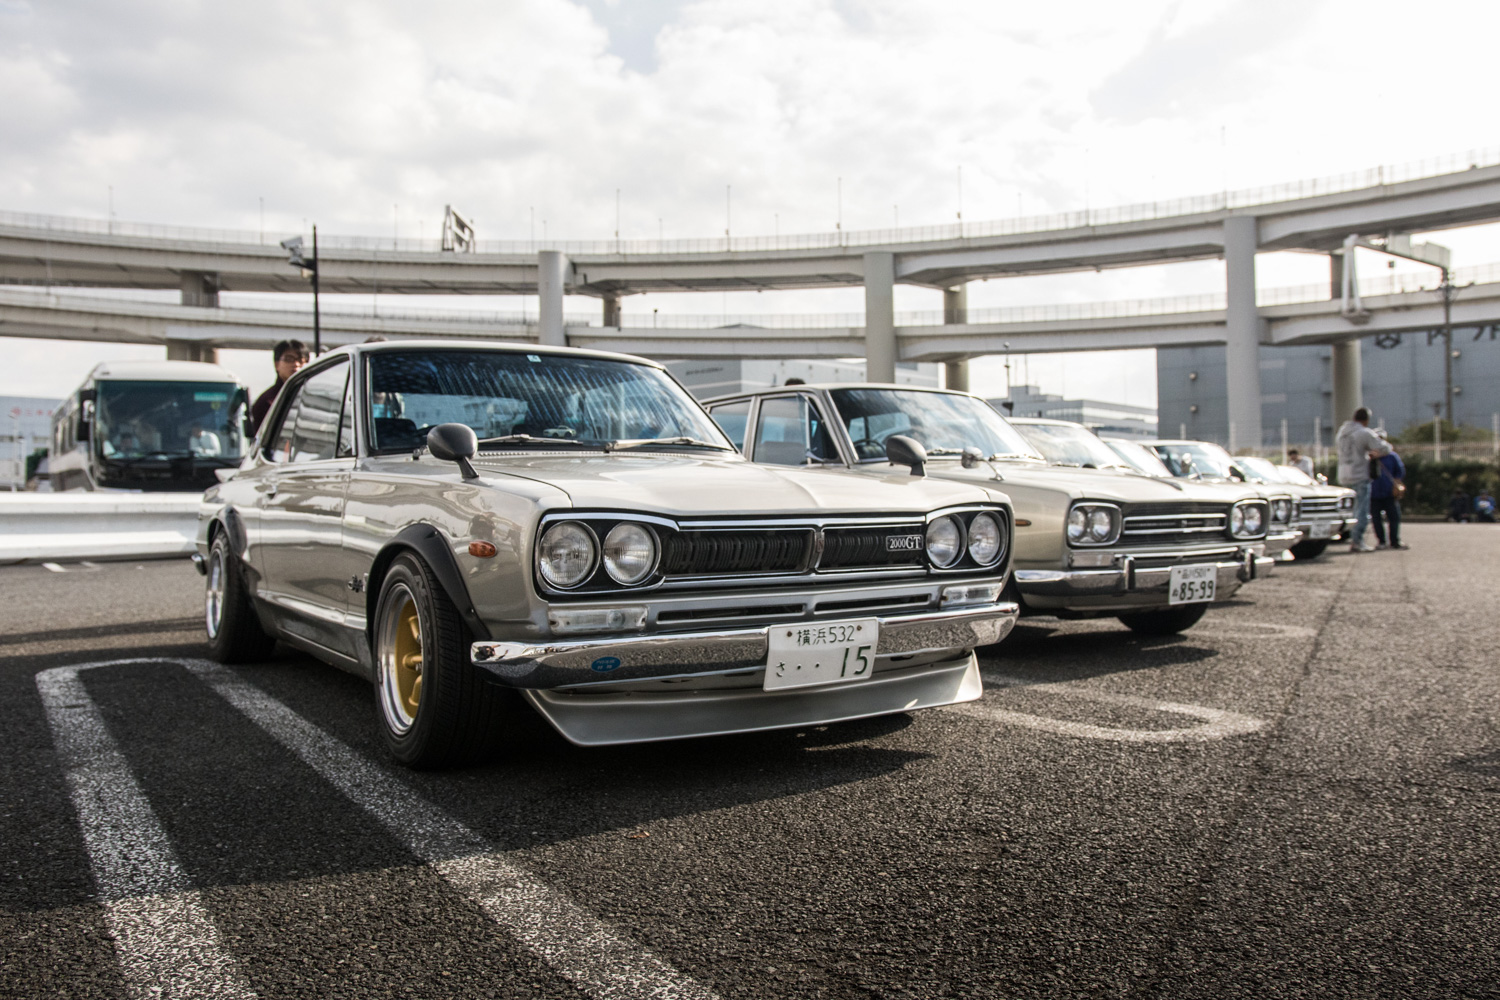 """The Hakosuka Nissan Skyline GT-R was a legend well before it was named """"Godzilla"""" thumbnail"""